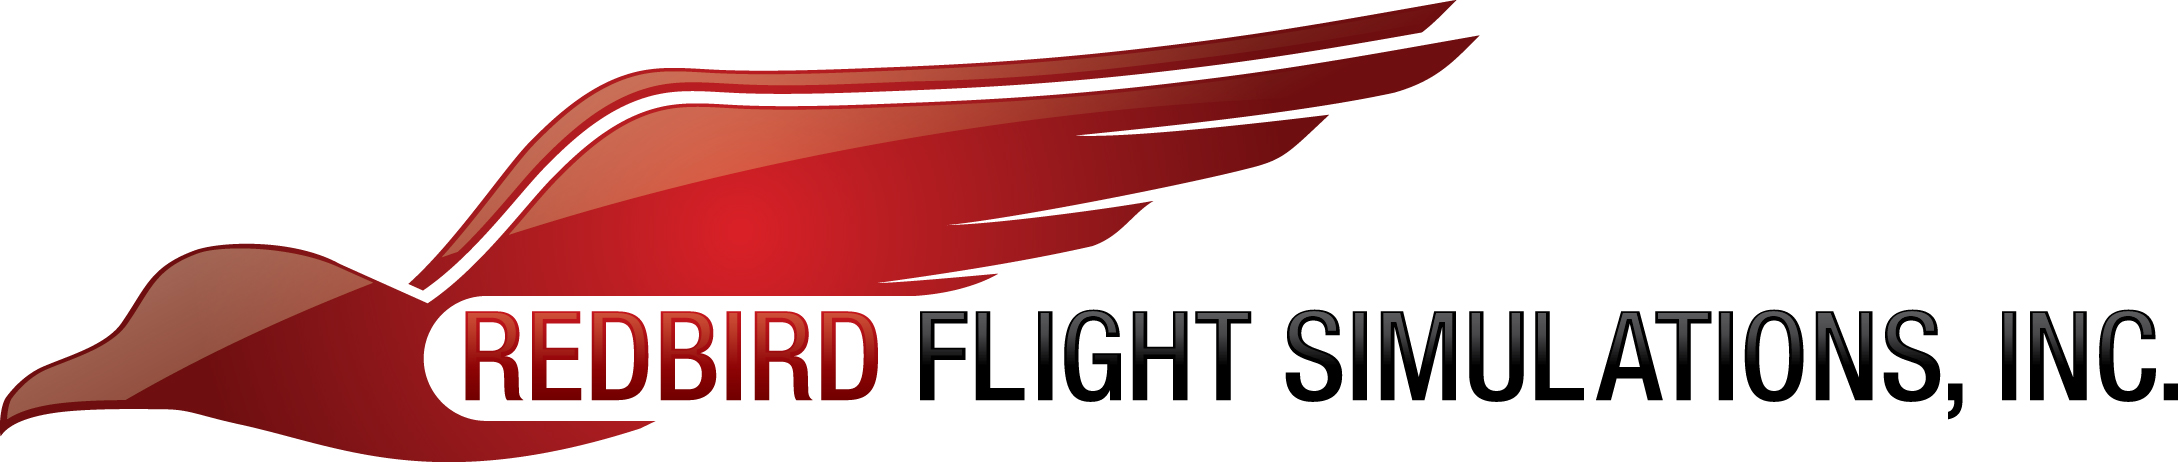 Redbird Flight Simulations Logo